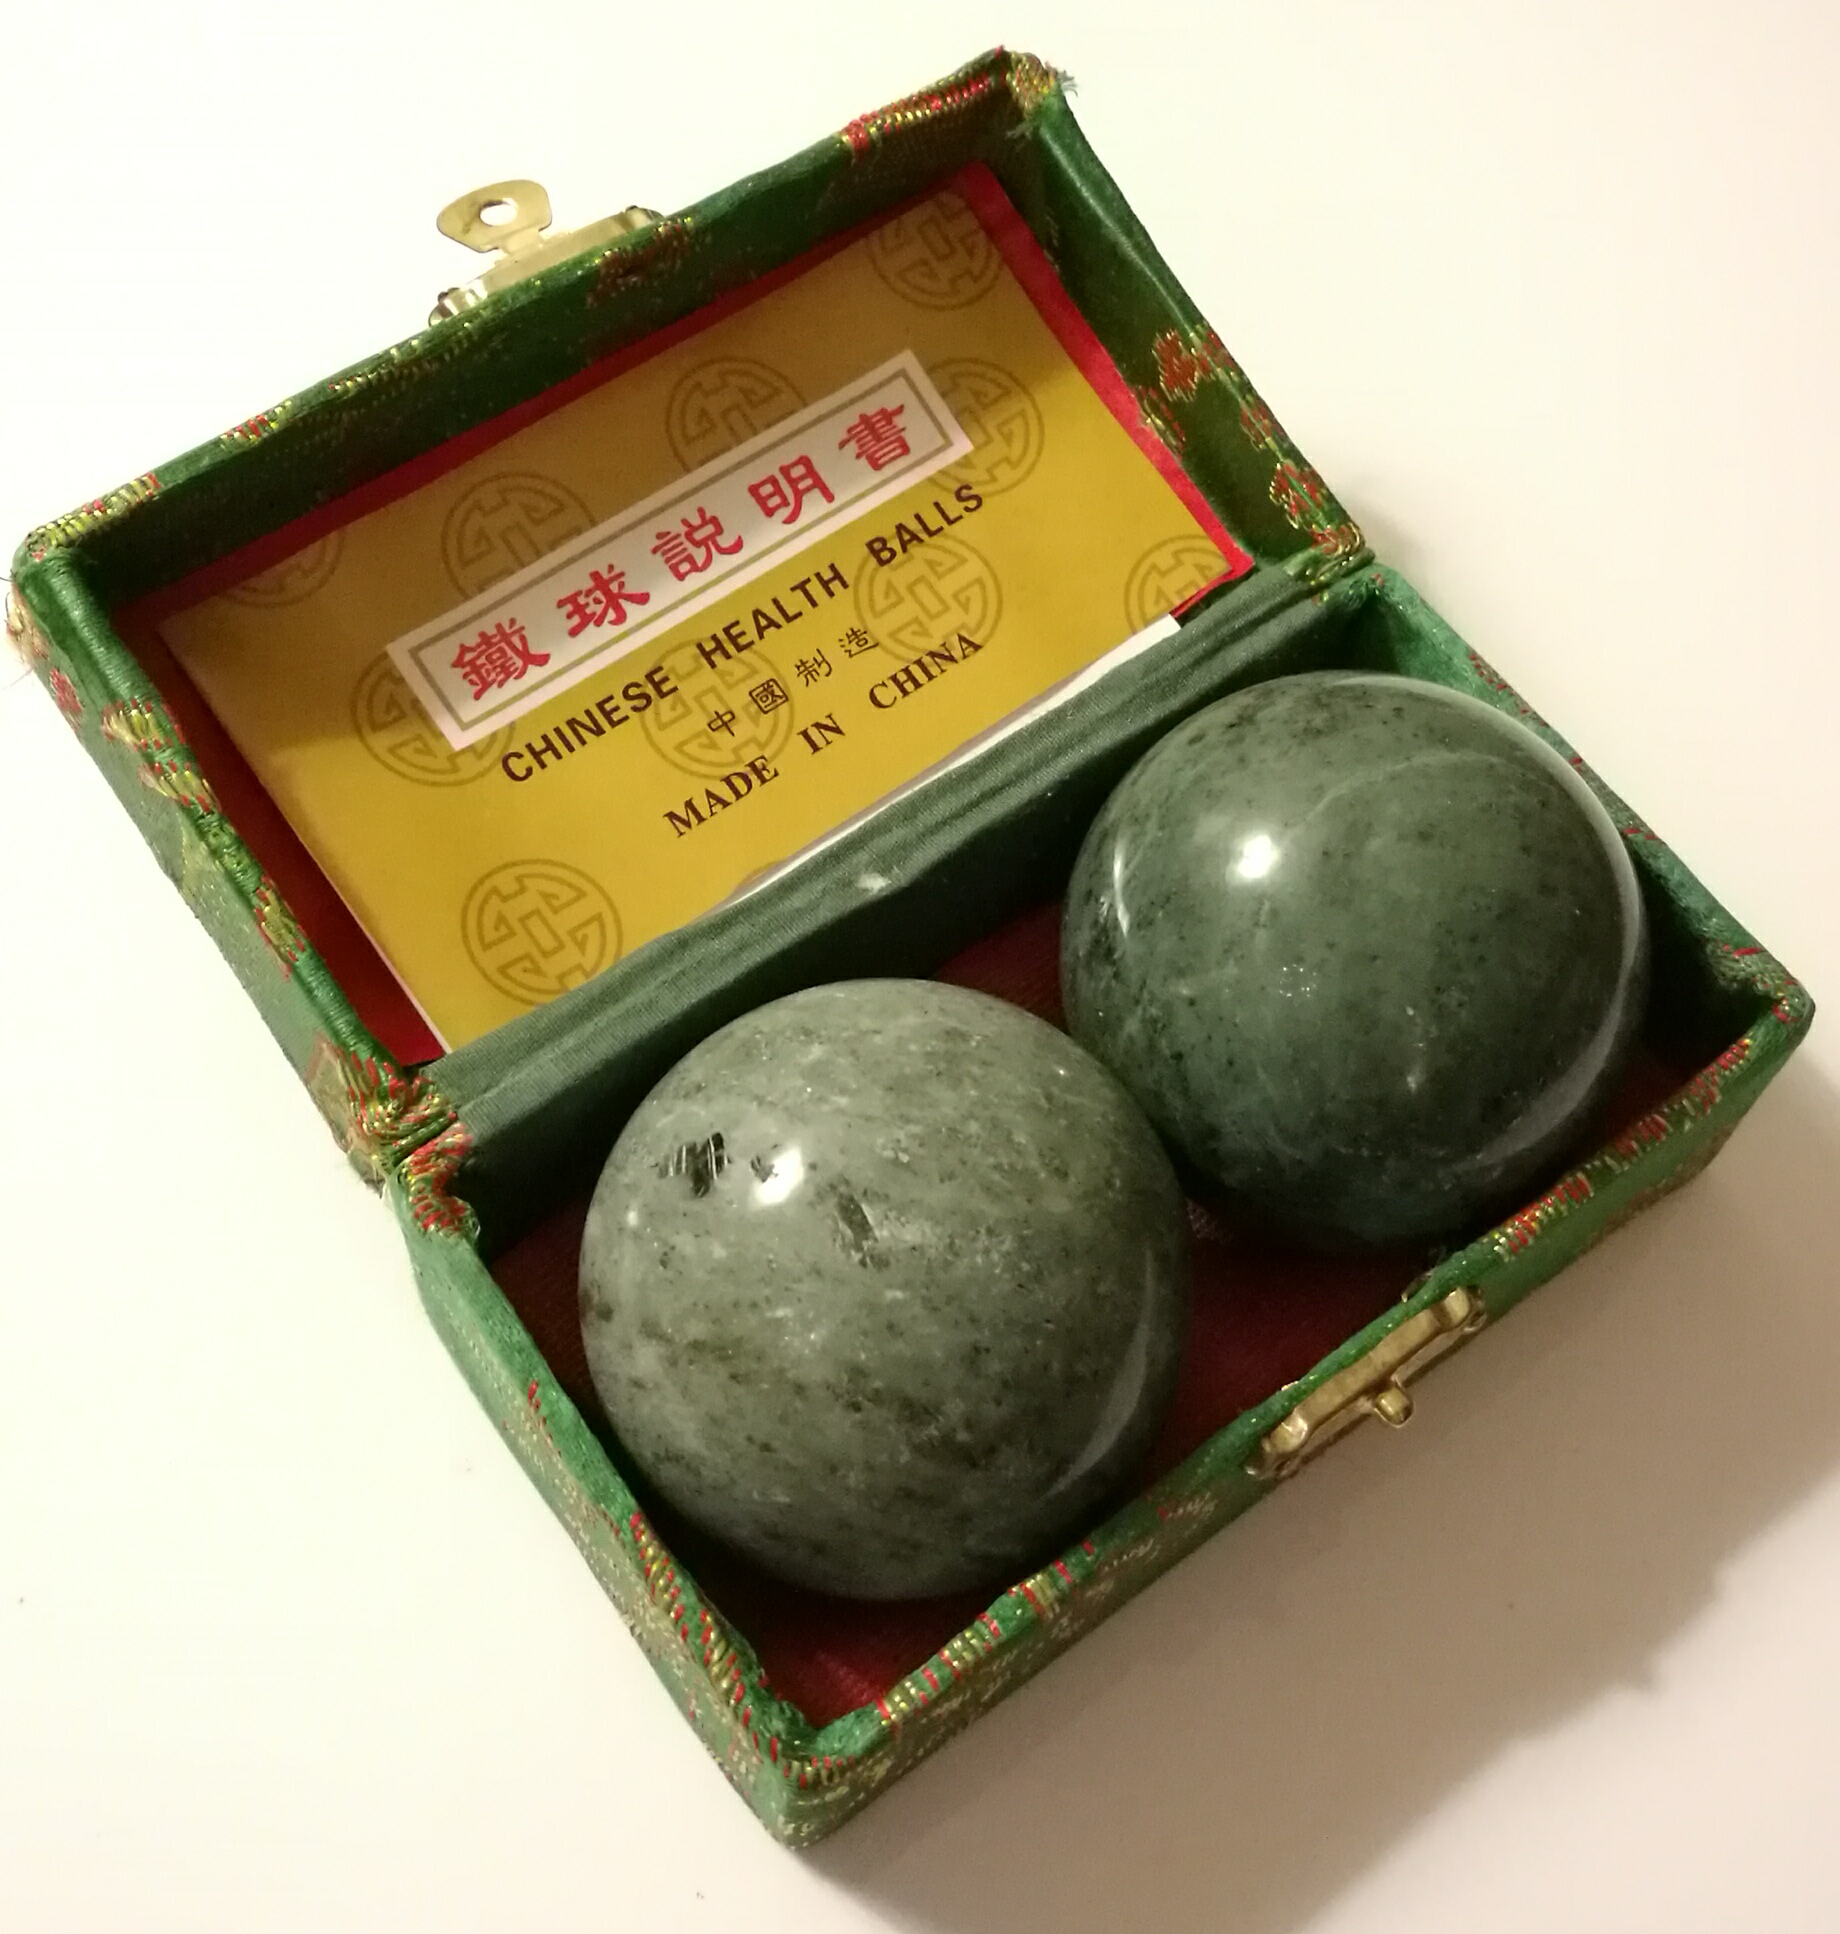 Green Marble Ball : Blackish jade green marble stone chinese healthy exercise